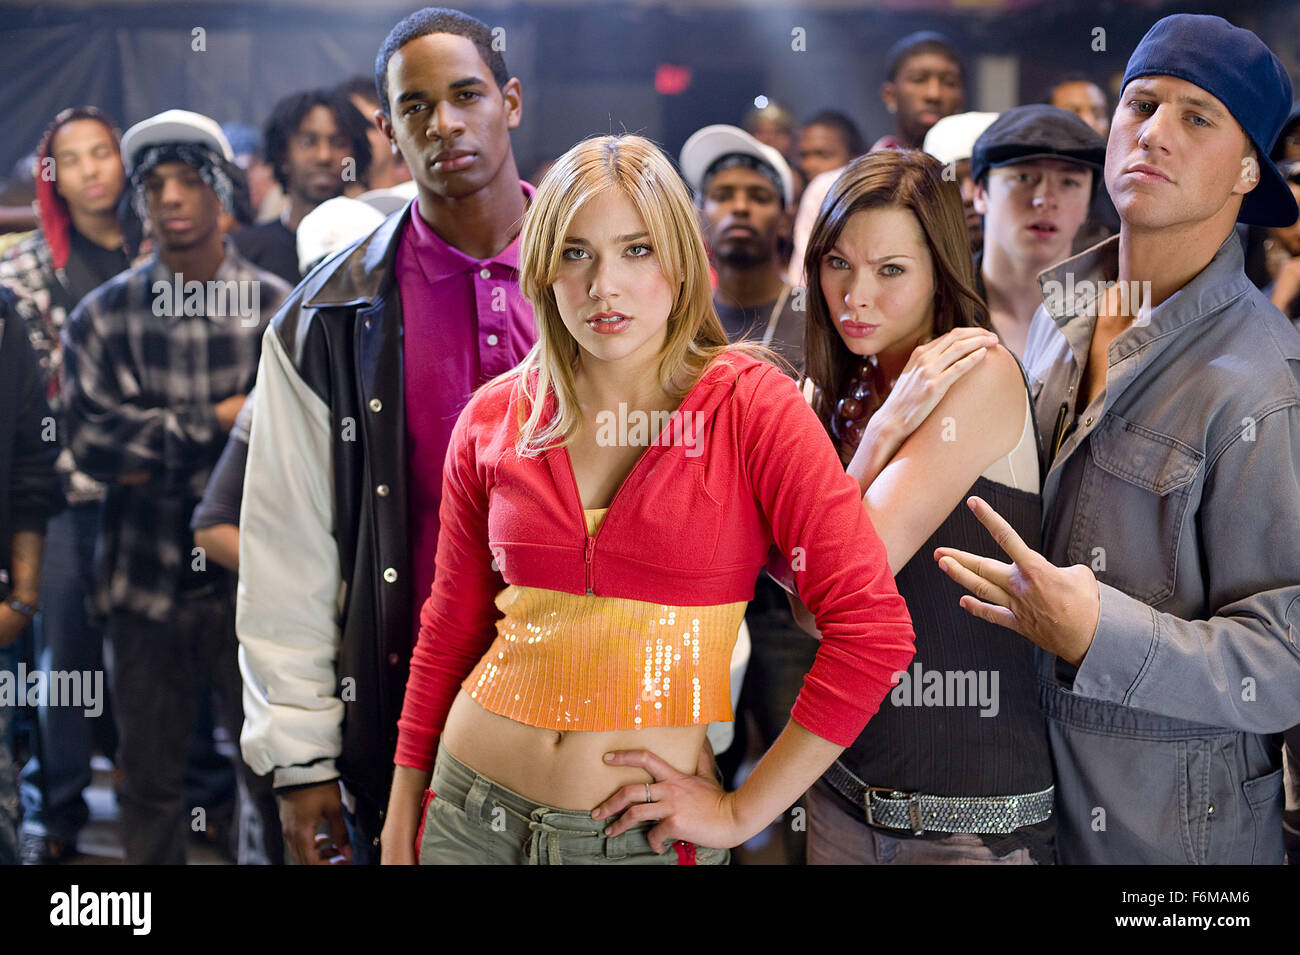 RELEASE DATE: August 14, 2009. MOVIE TITLE: Dance Flick. STUDIO: Paramount Pictures. PLOT: A satirical jab at musical - Stock Image